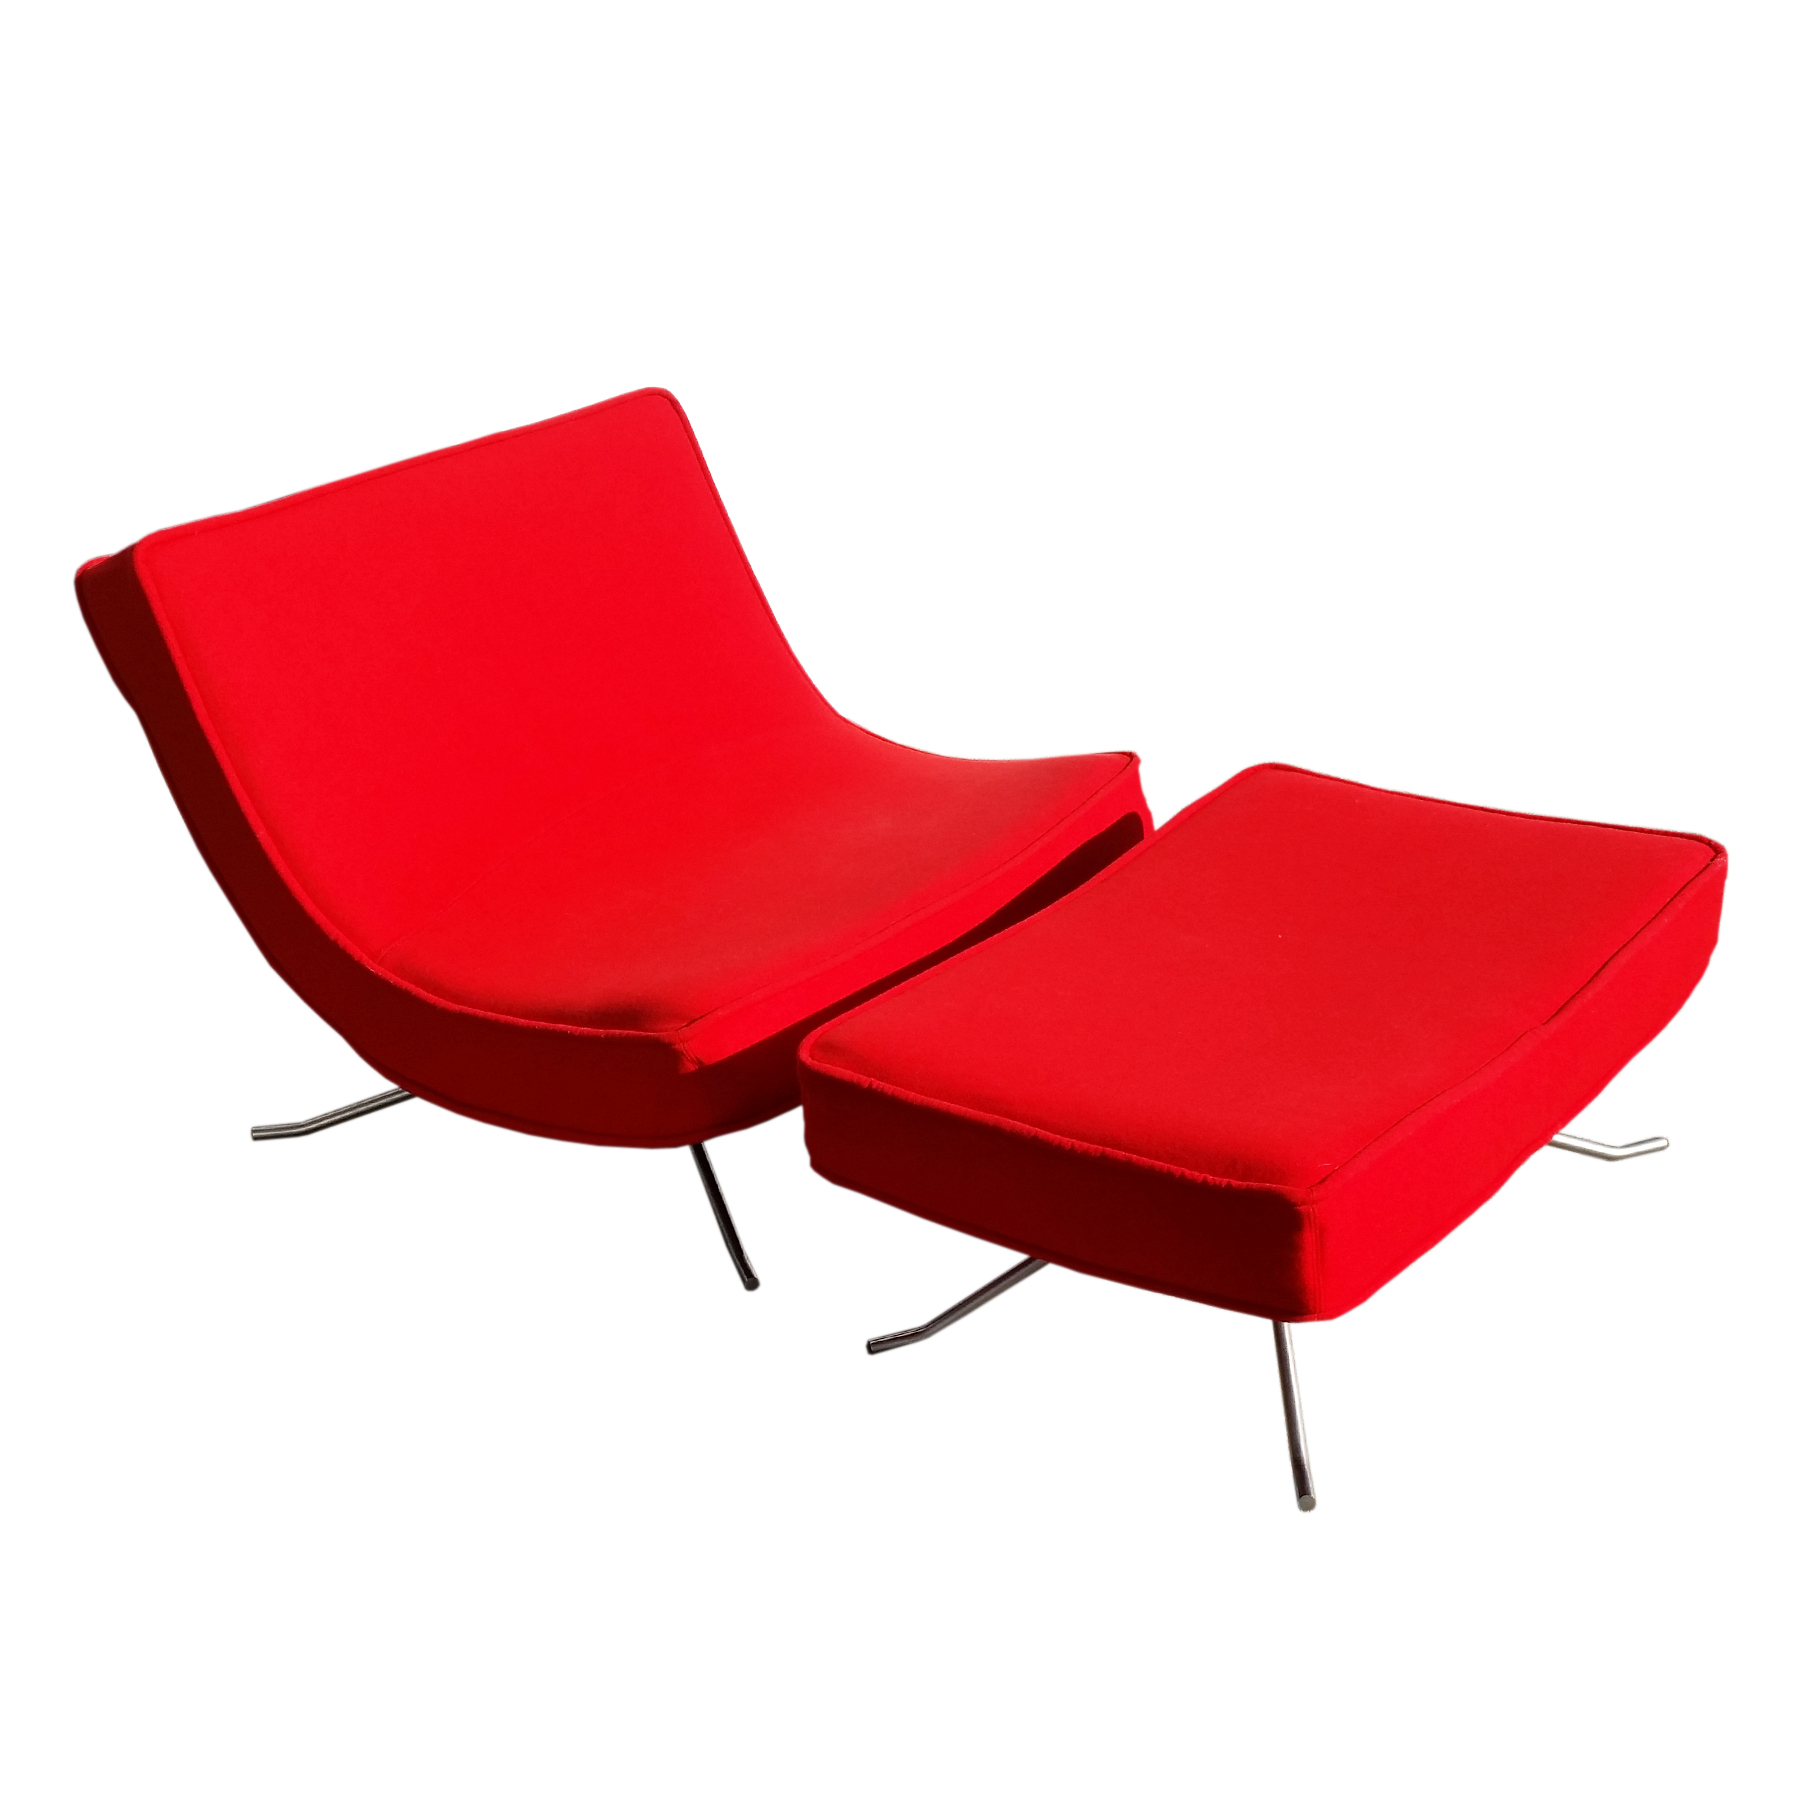 ligne-roset-lounge-pop